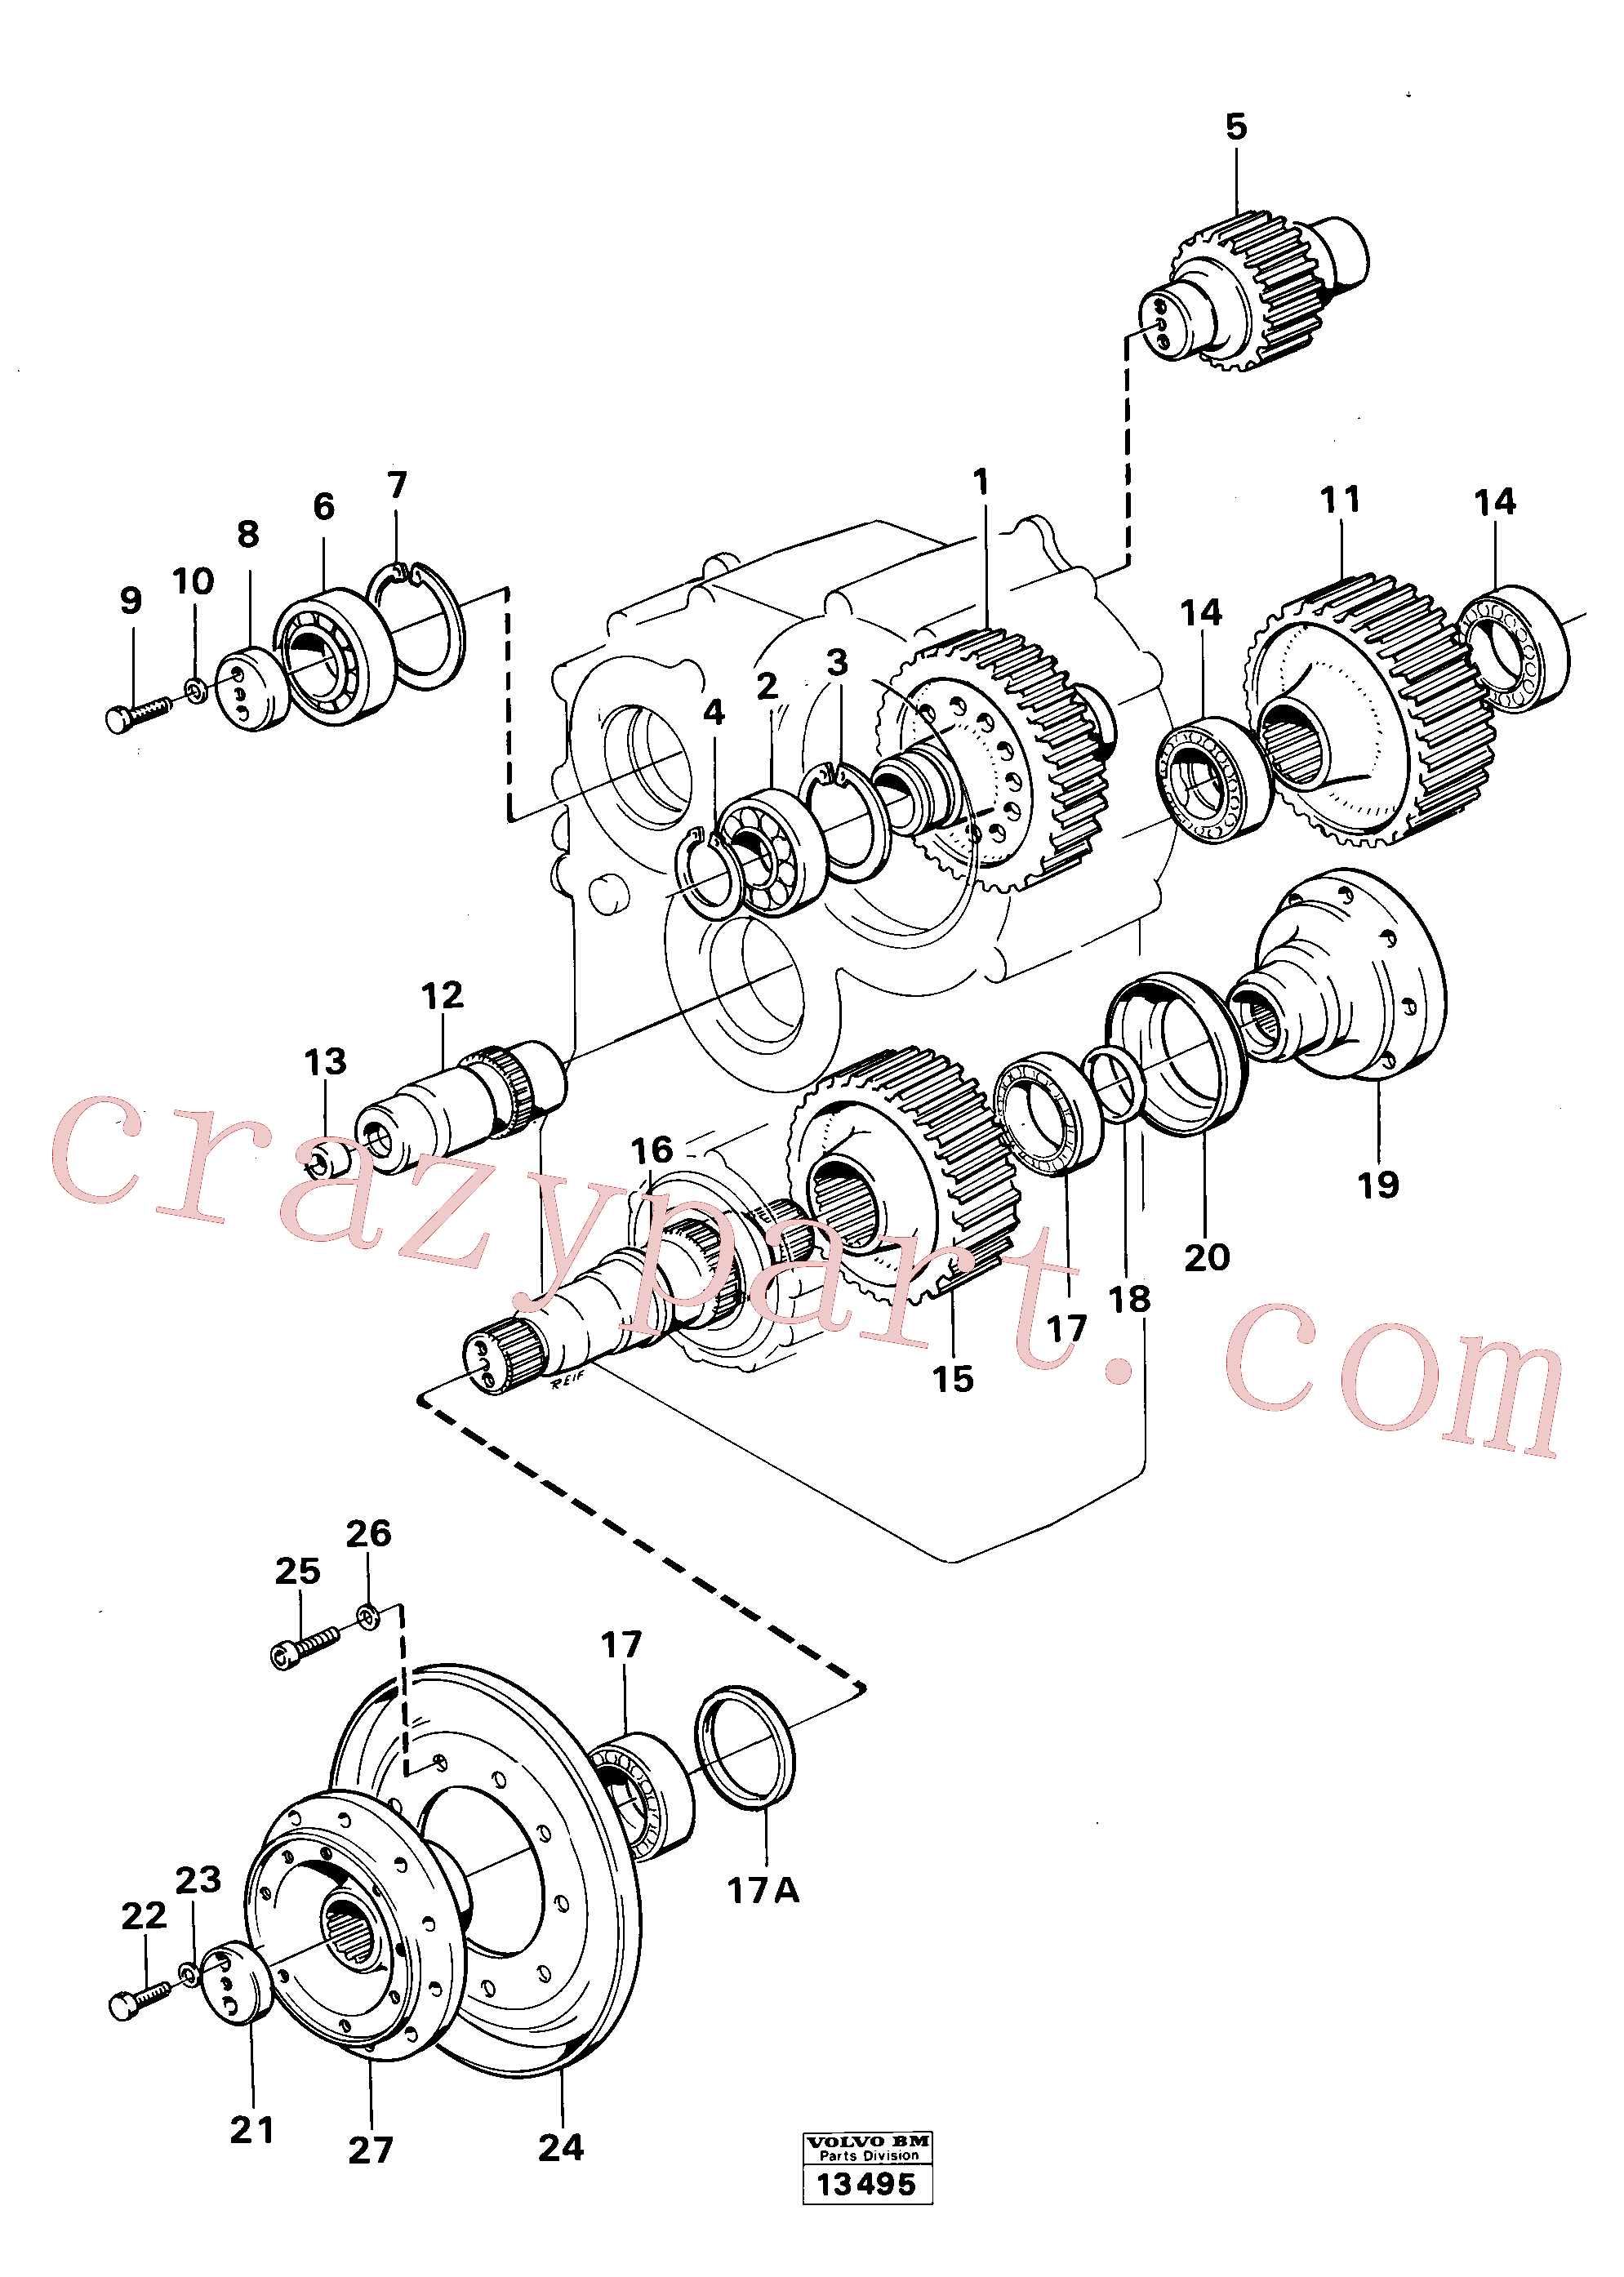 VOE951089 for Volvo Dropbox gears and shafts(13495 assembly)